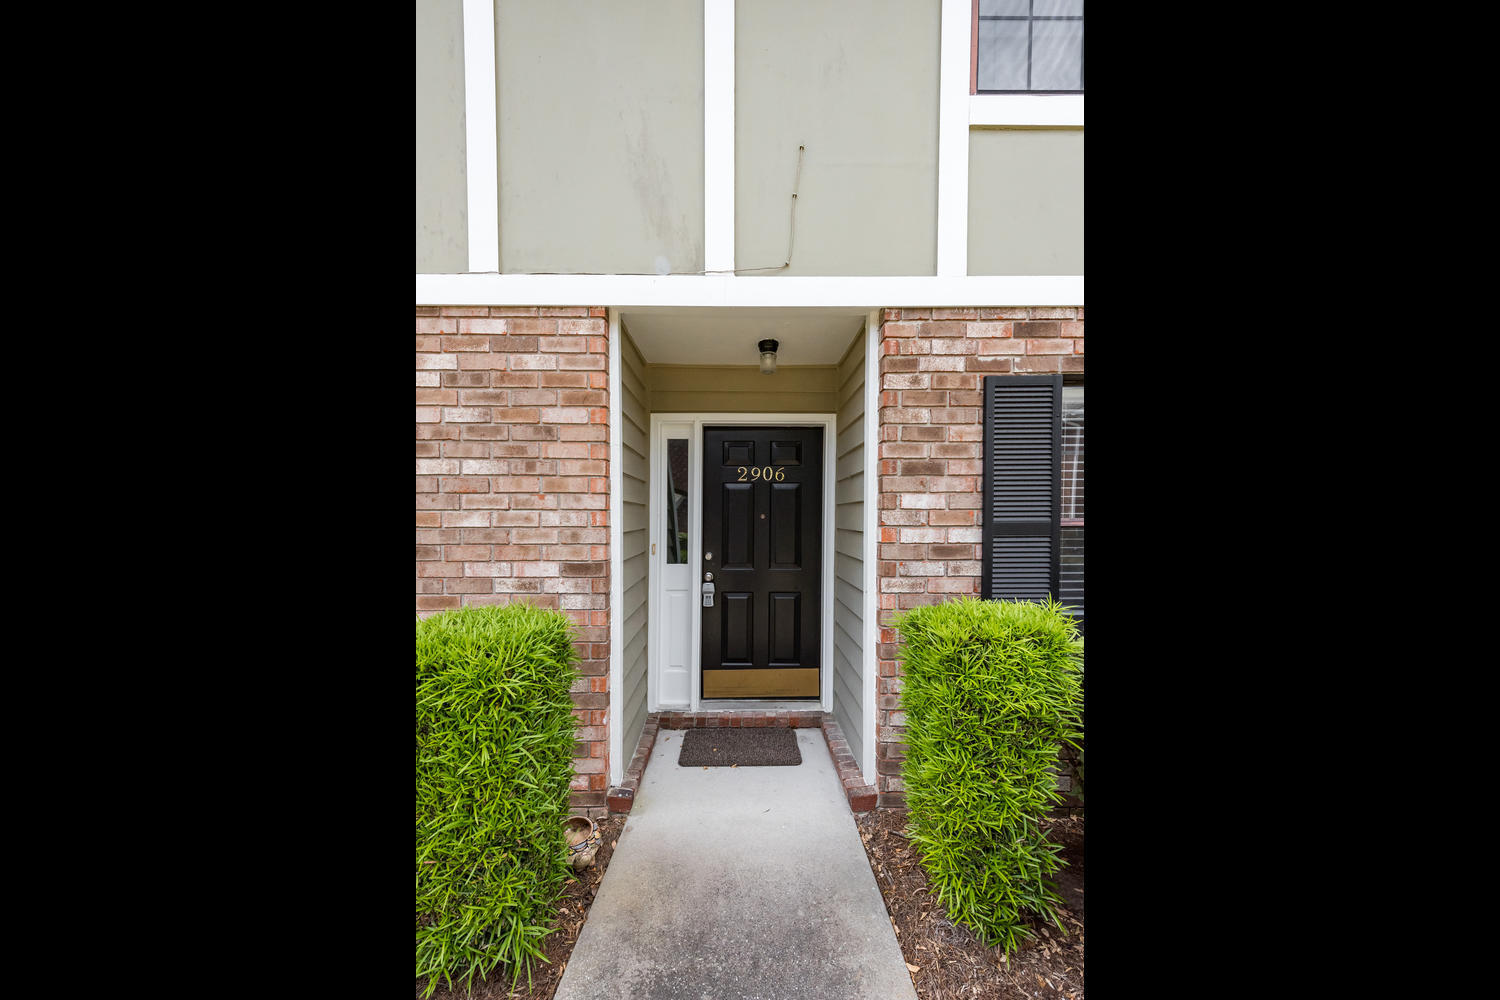 Old Towne Villas Homes For Sale - 2906 Oxford, Charleston, SC - 20